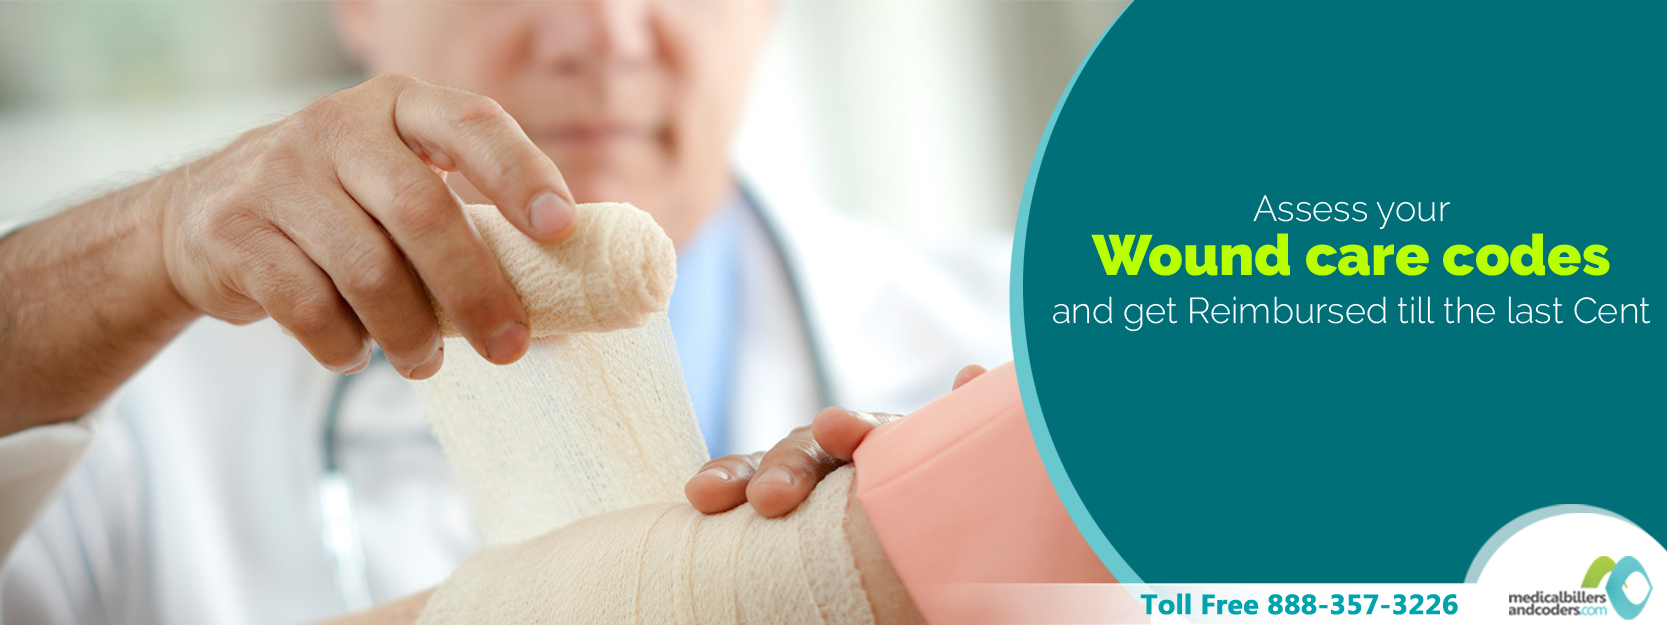 Assess Your Wound Care Codes and Get Reimbursed Till the Last Cent